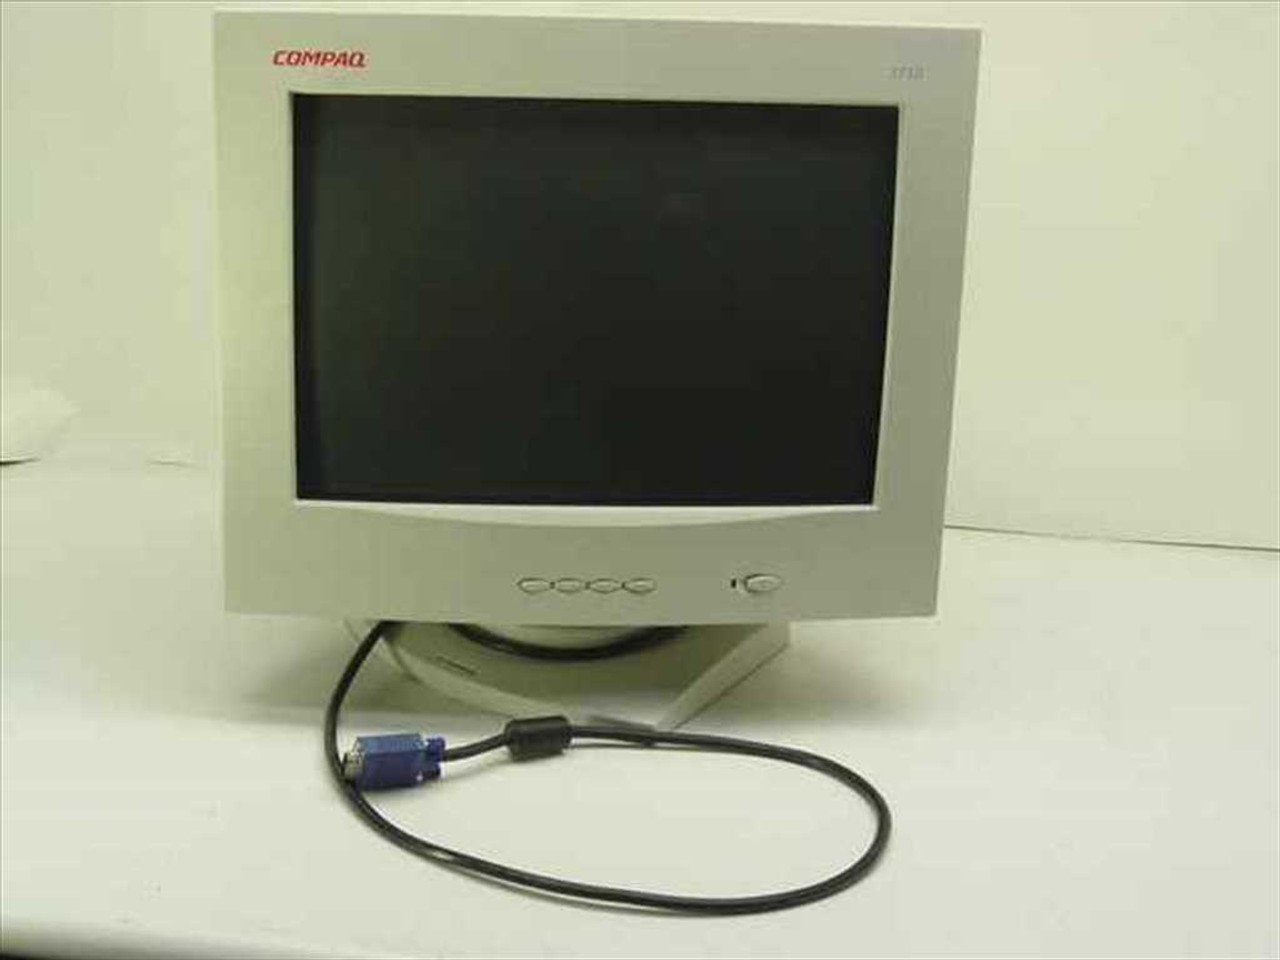 COMPAQ S710 MONITOR DRIVERS WINDOWS XP